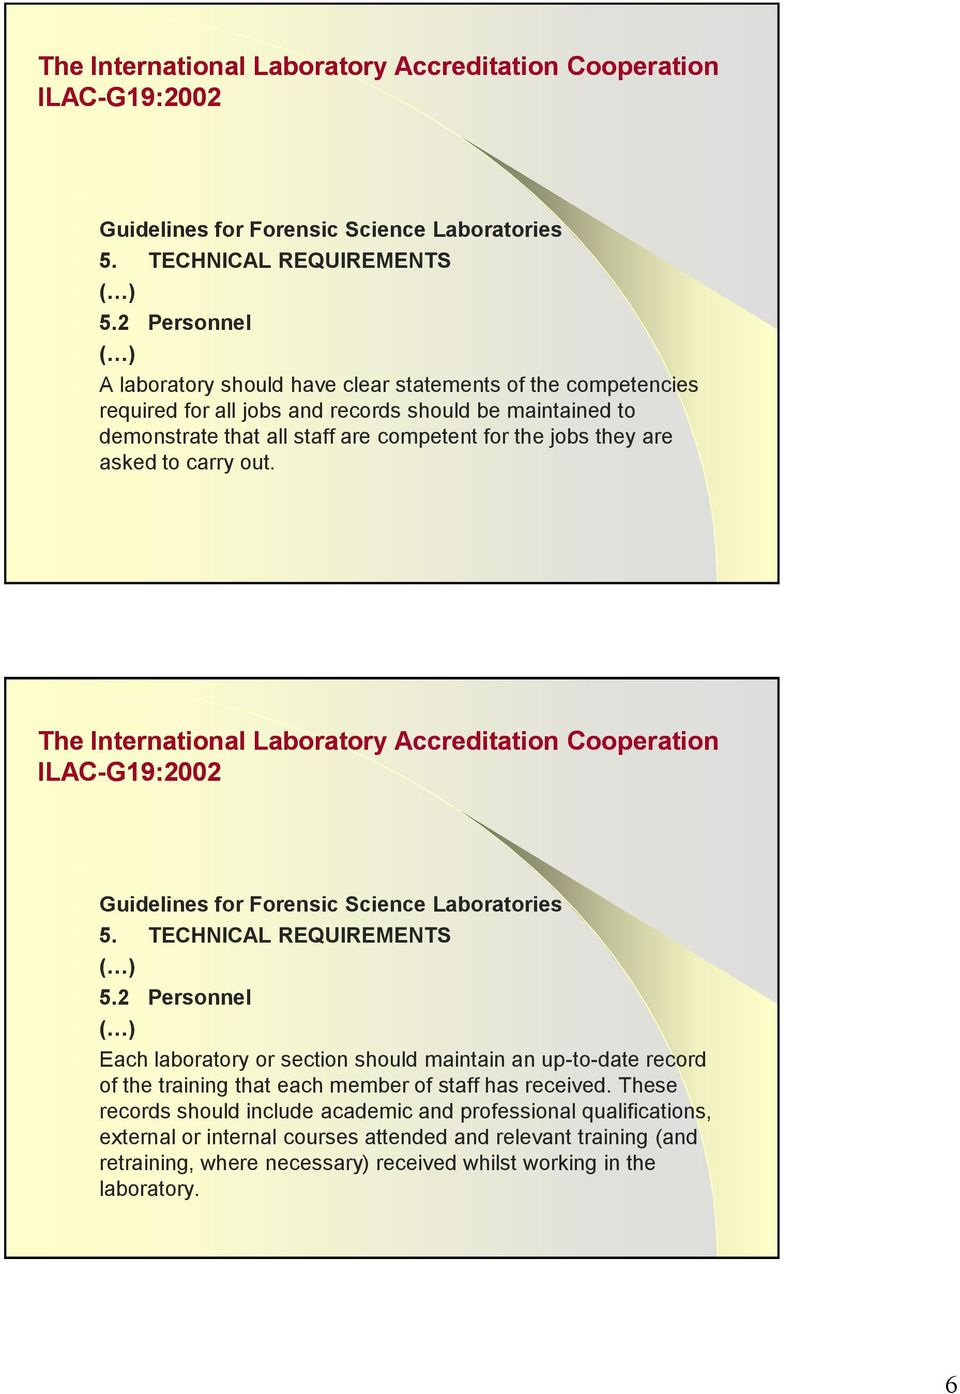 The International Laboratory Accreditation Cooperation Each laboratory or section should maintain an up-to-date record of the training that each member of staff